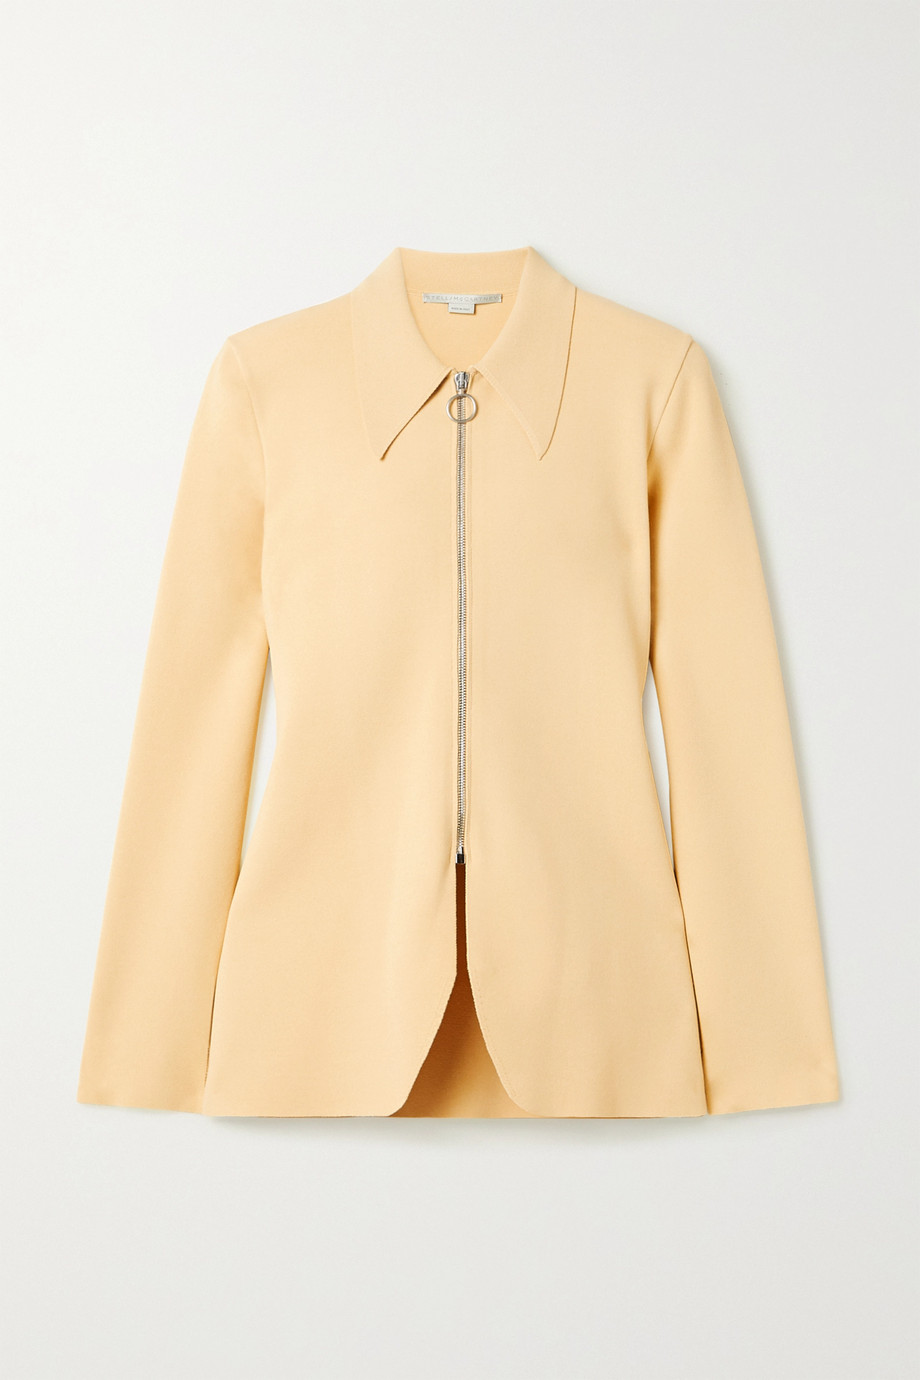 Stella McCartney Stretch-knit jacket